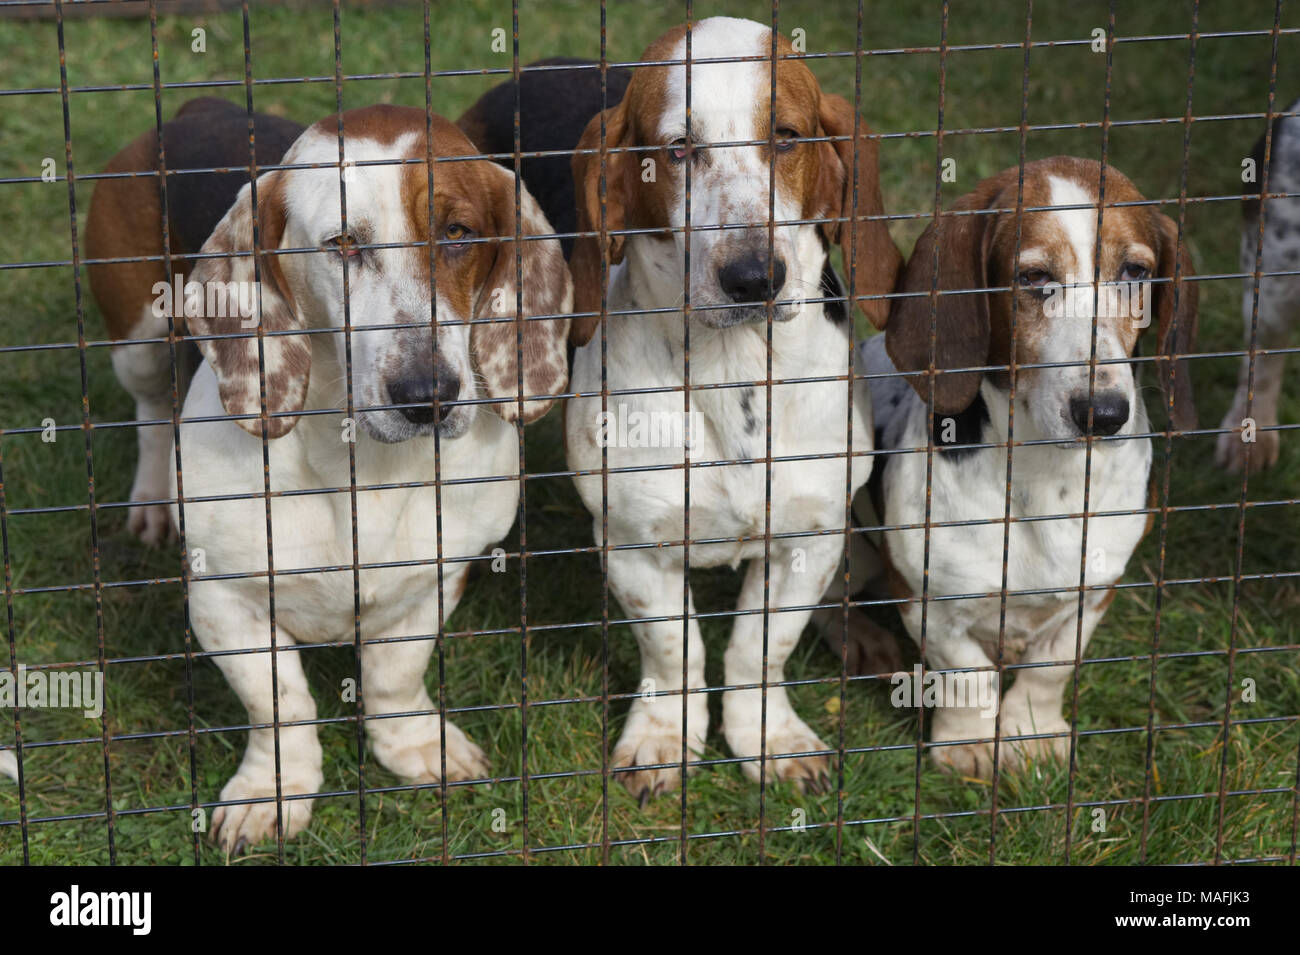 Basset Hounds in a wire cage - Stock Image